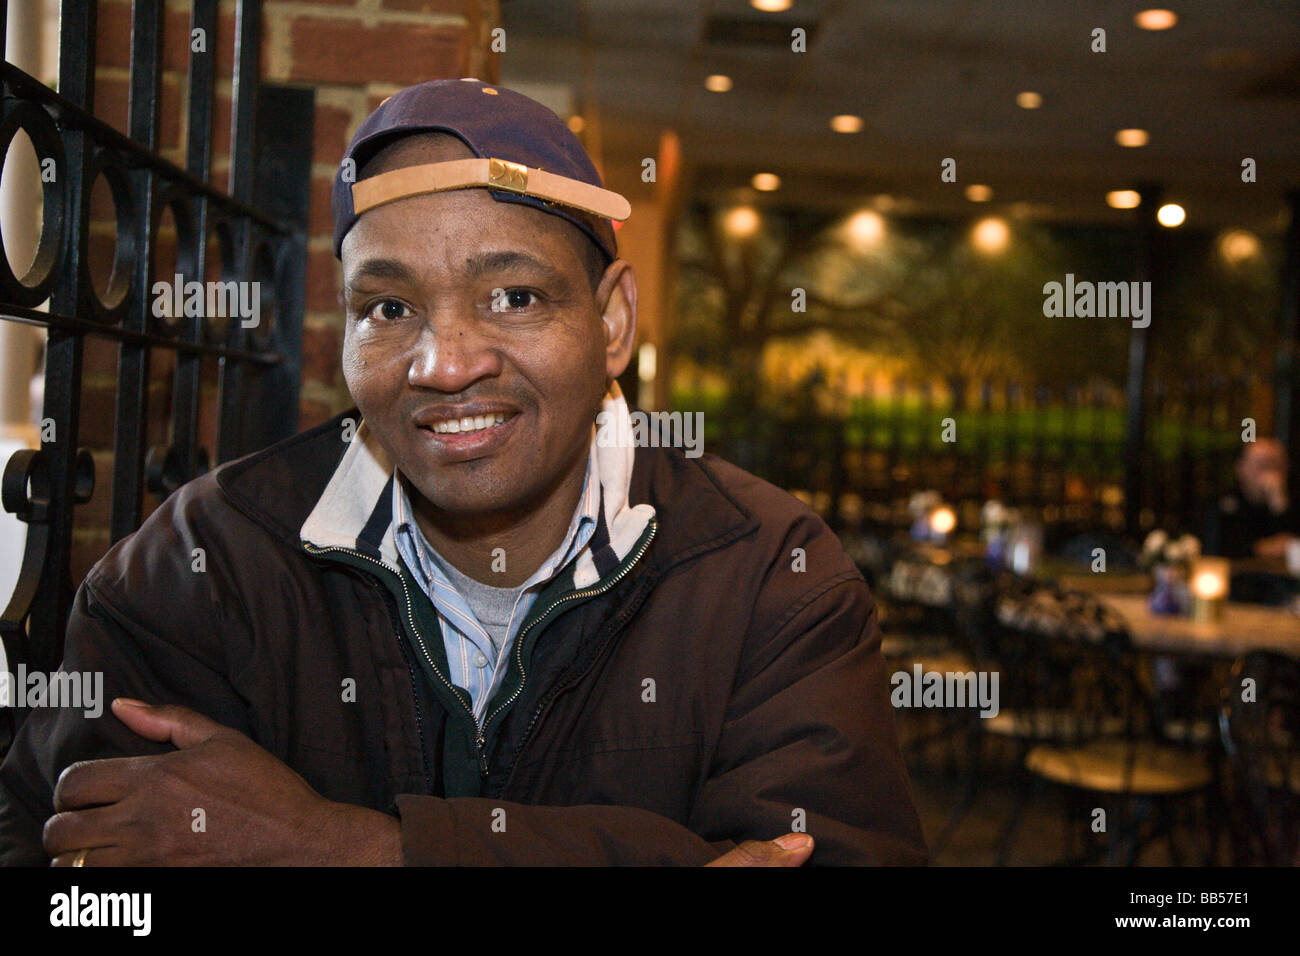 A tourist samples Seasons Restaurant in Merchant Square next to Colonial Williamsburg, Virginia. - Stock Image